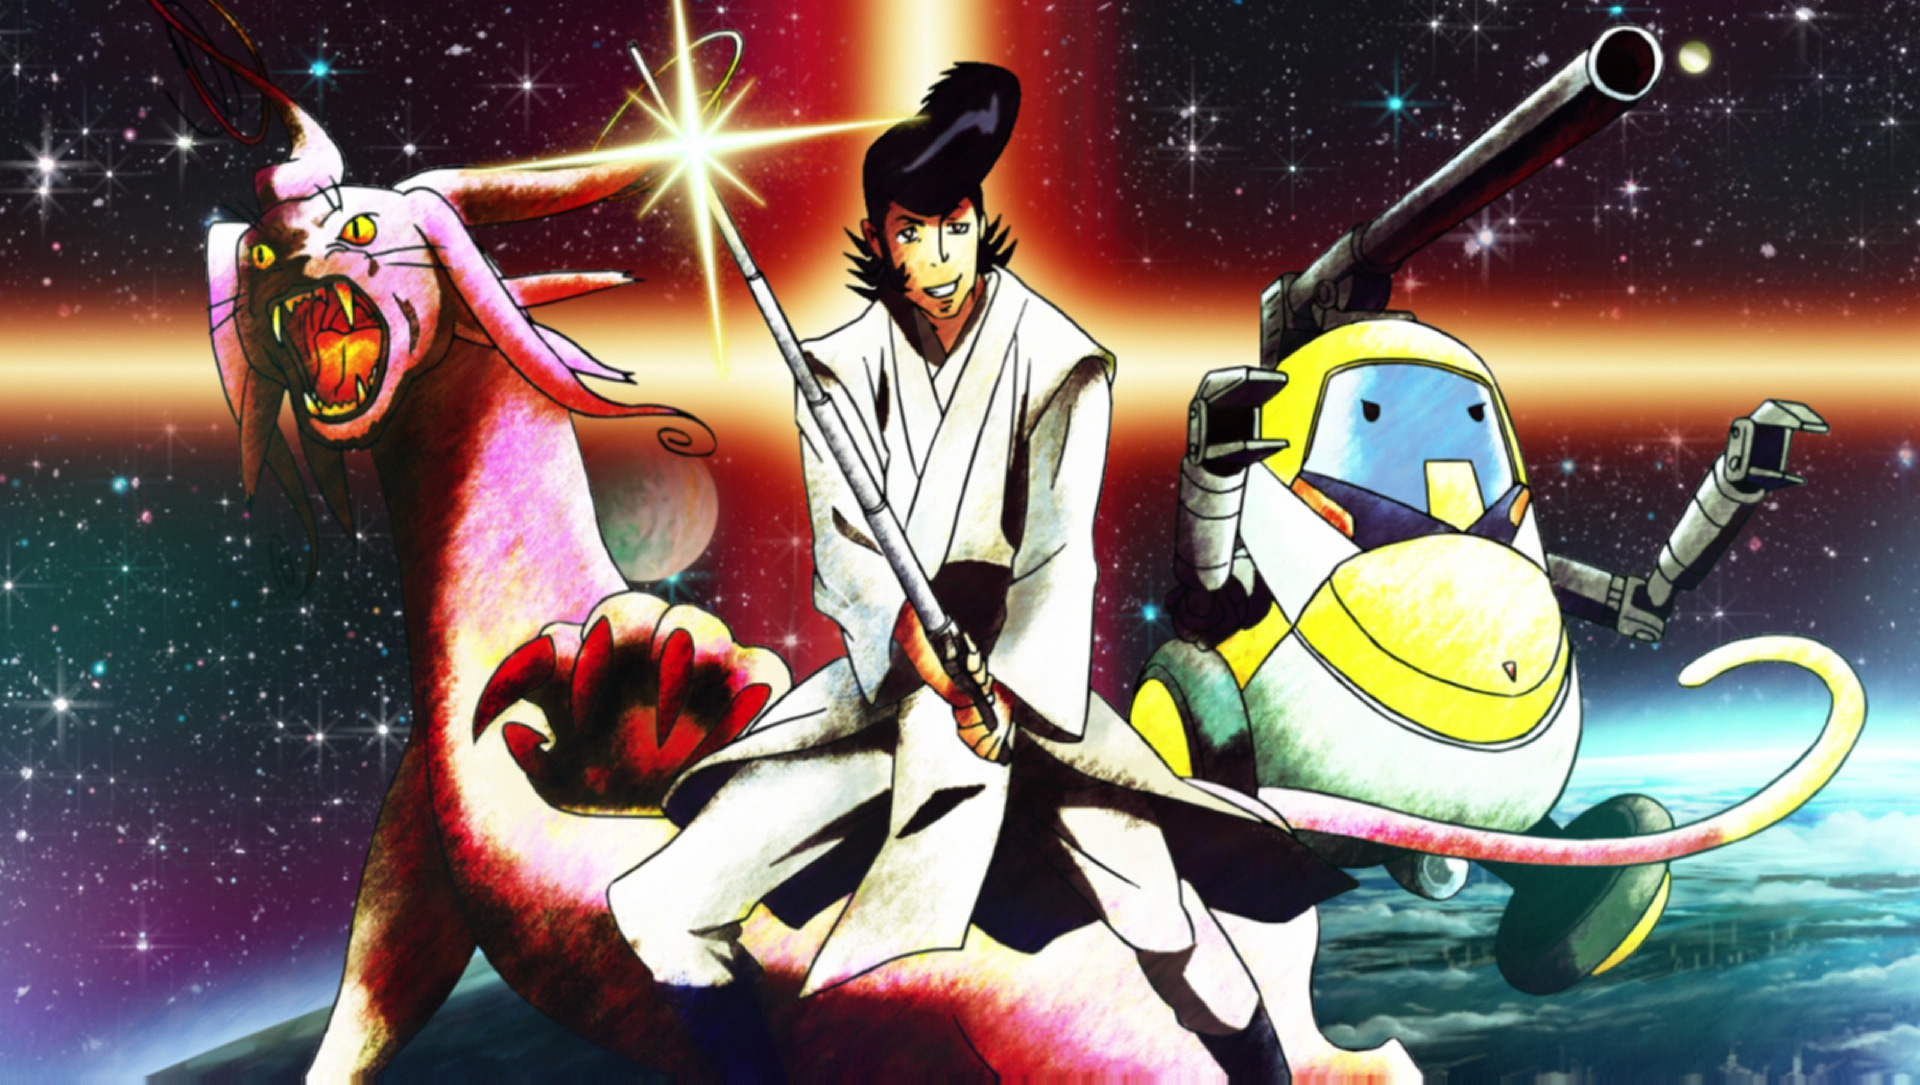 watch space dandy season 2 episode 14 anime uncut on funimation